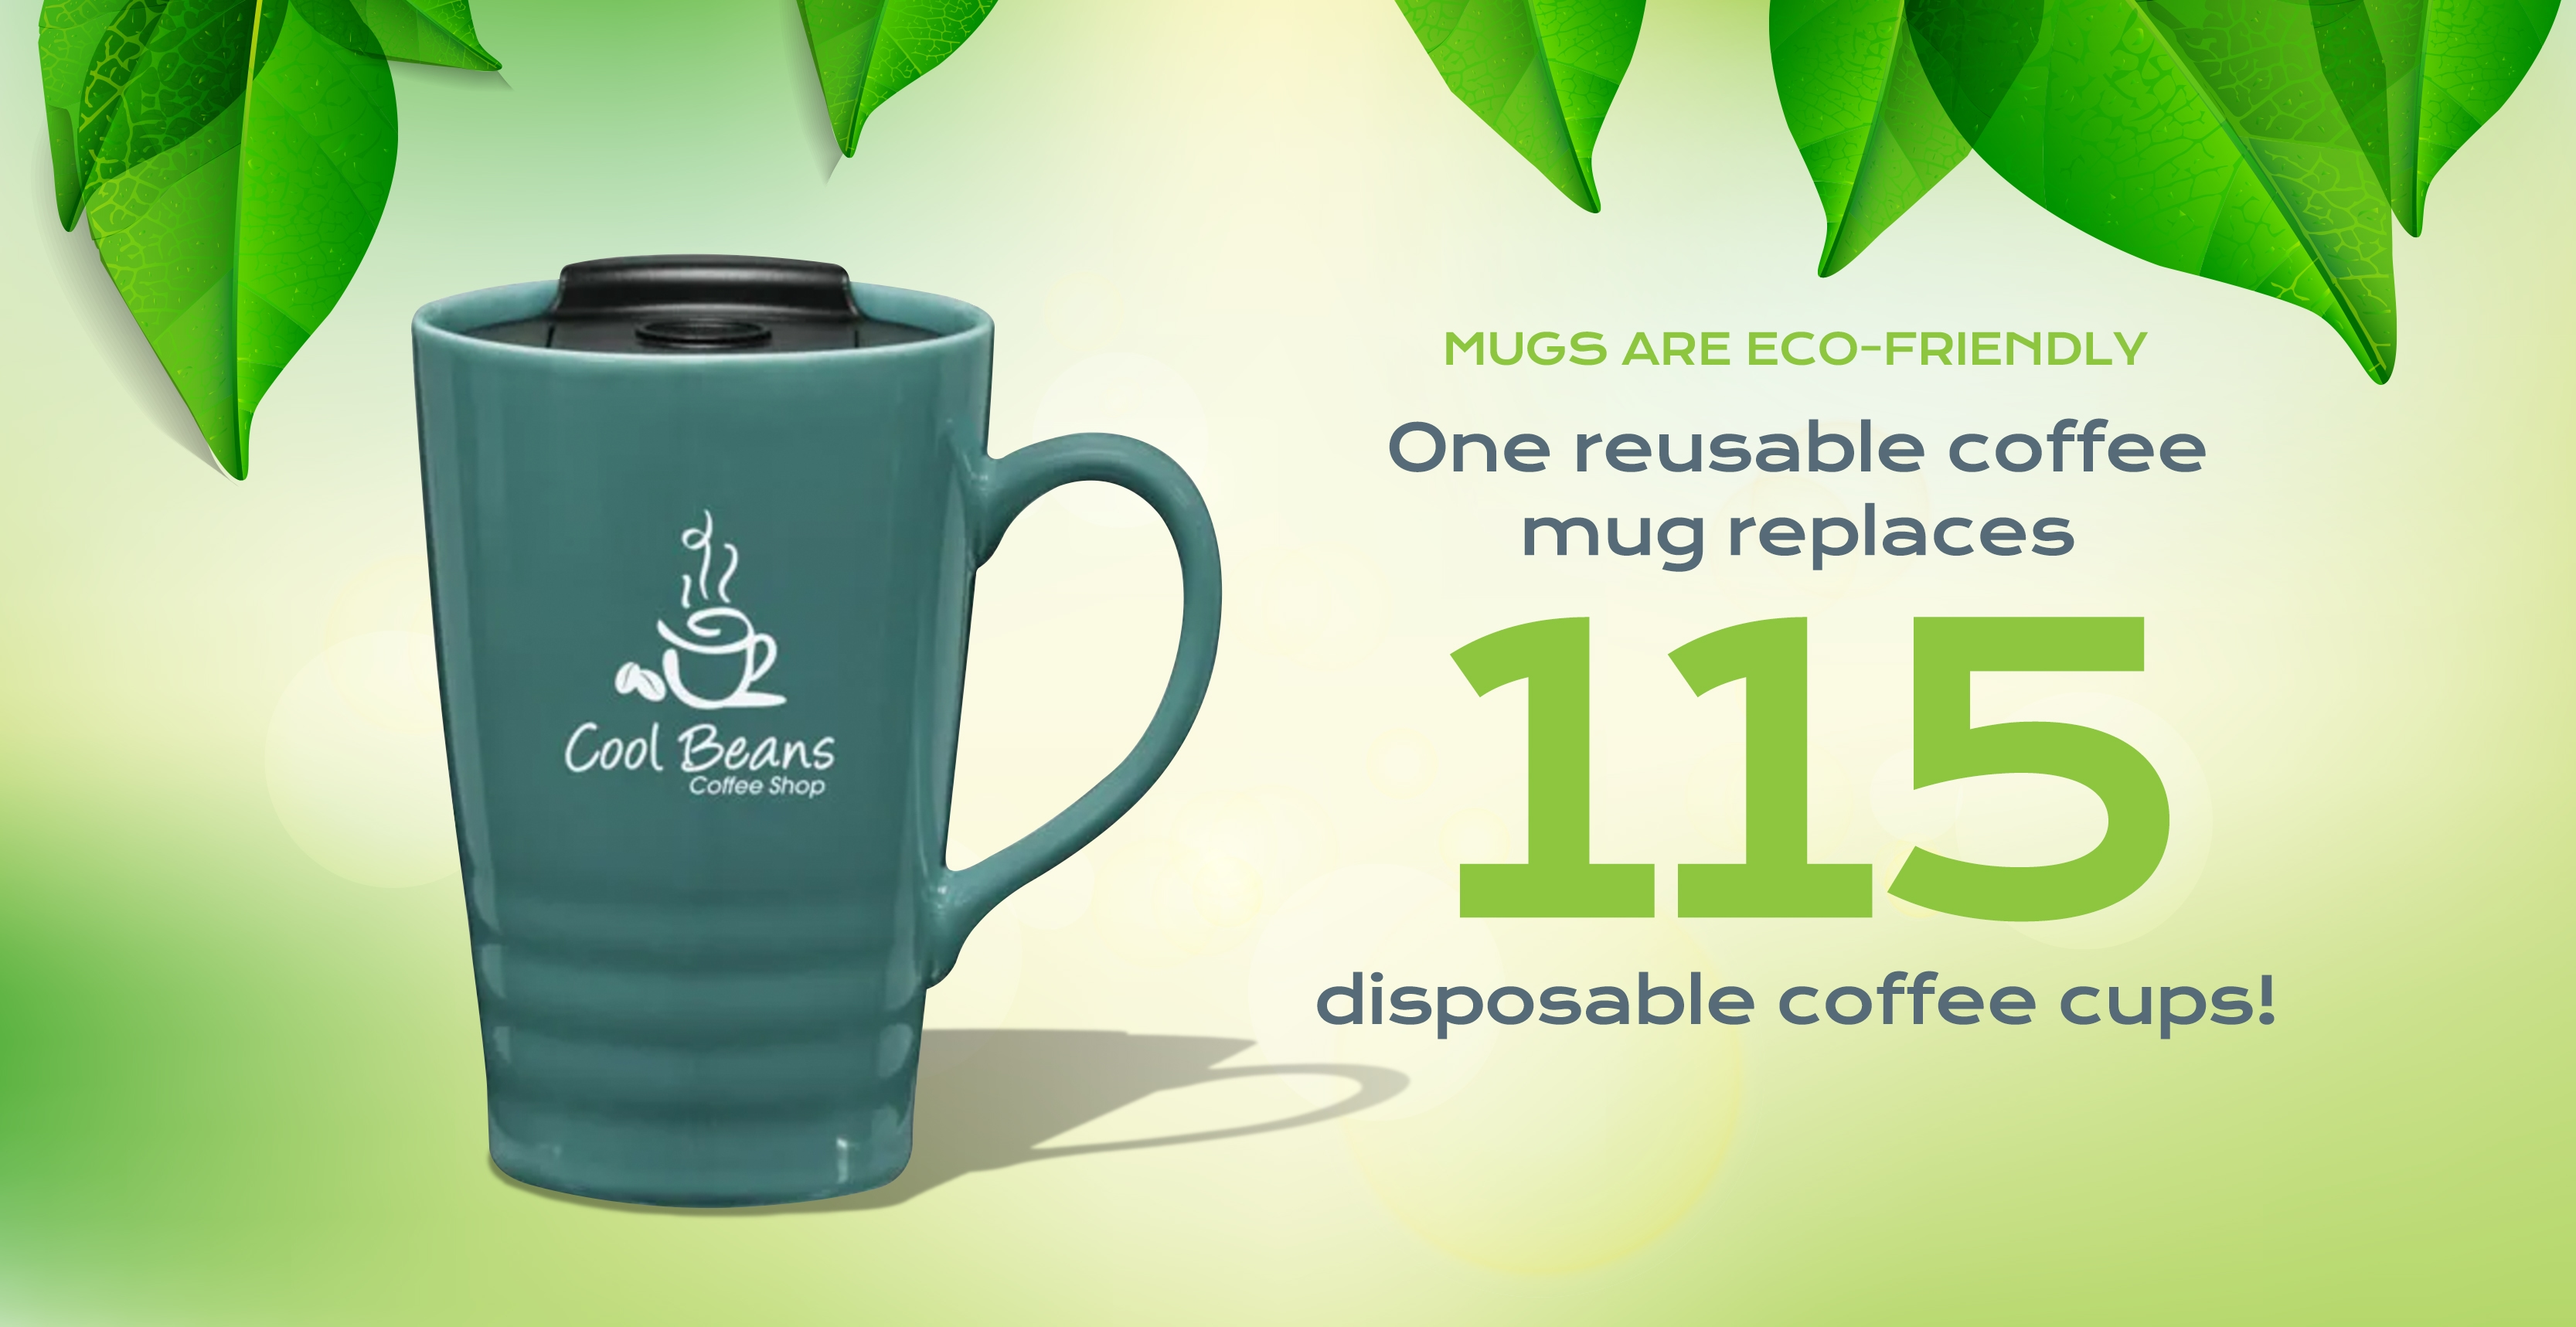 A reusable coffee mug replaces 115 disposable coffee mugs